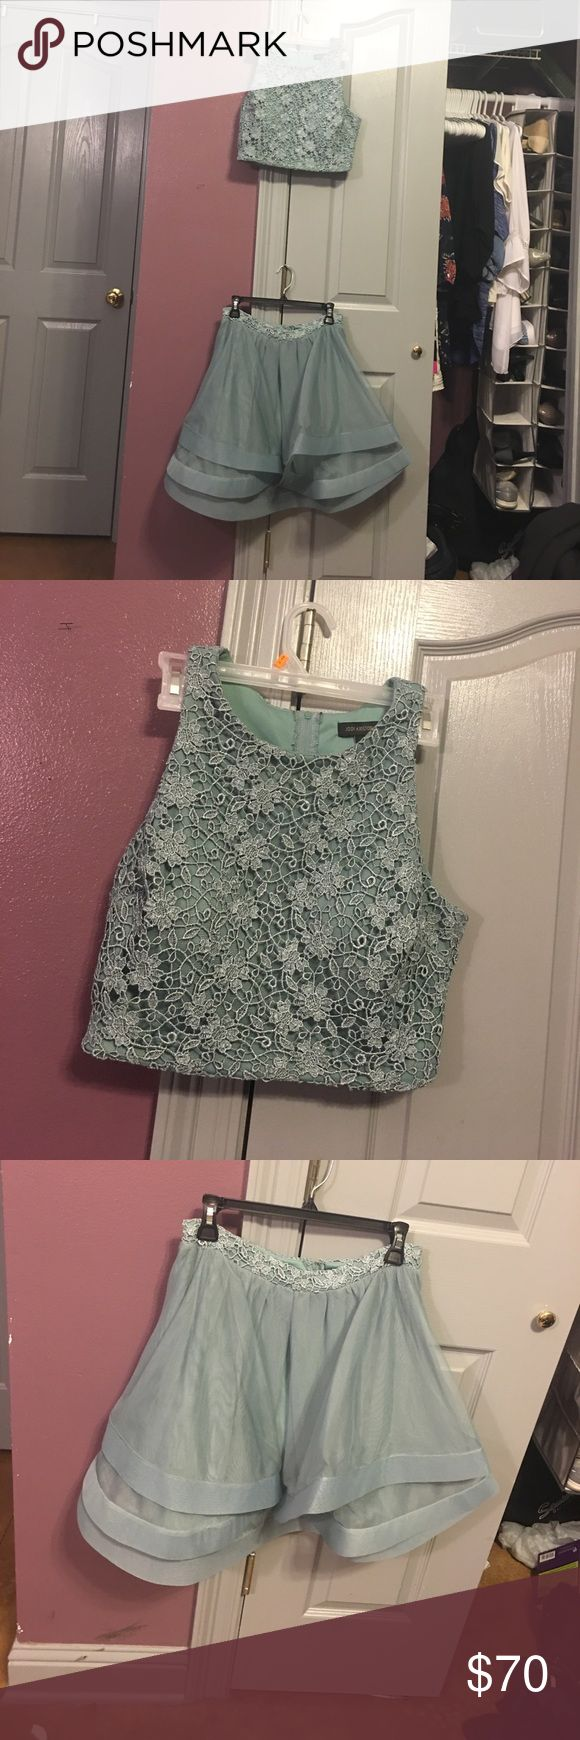 Light olive green homecoming dress two piece Two piece homecoming dress whimsical design flower patterned top sparkly worn once Jodi Kristopher Dresses Midi